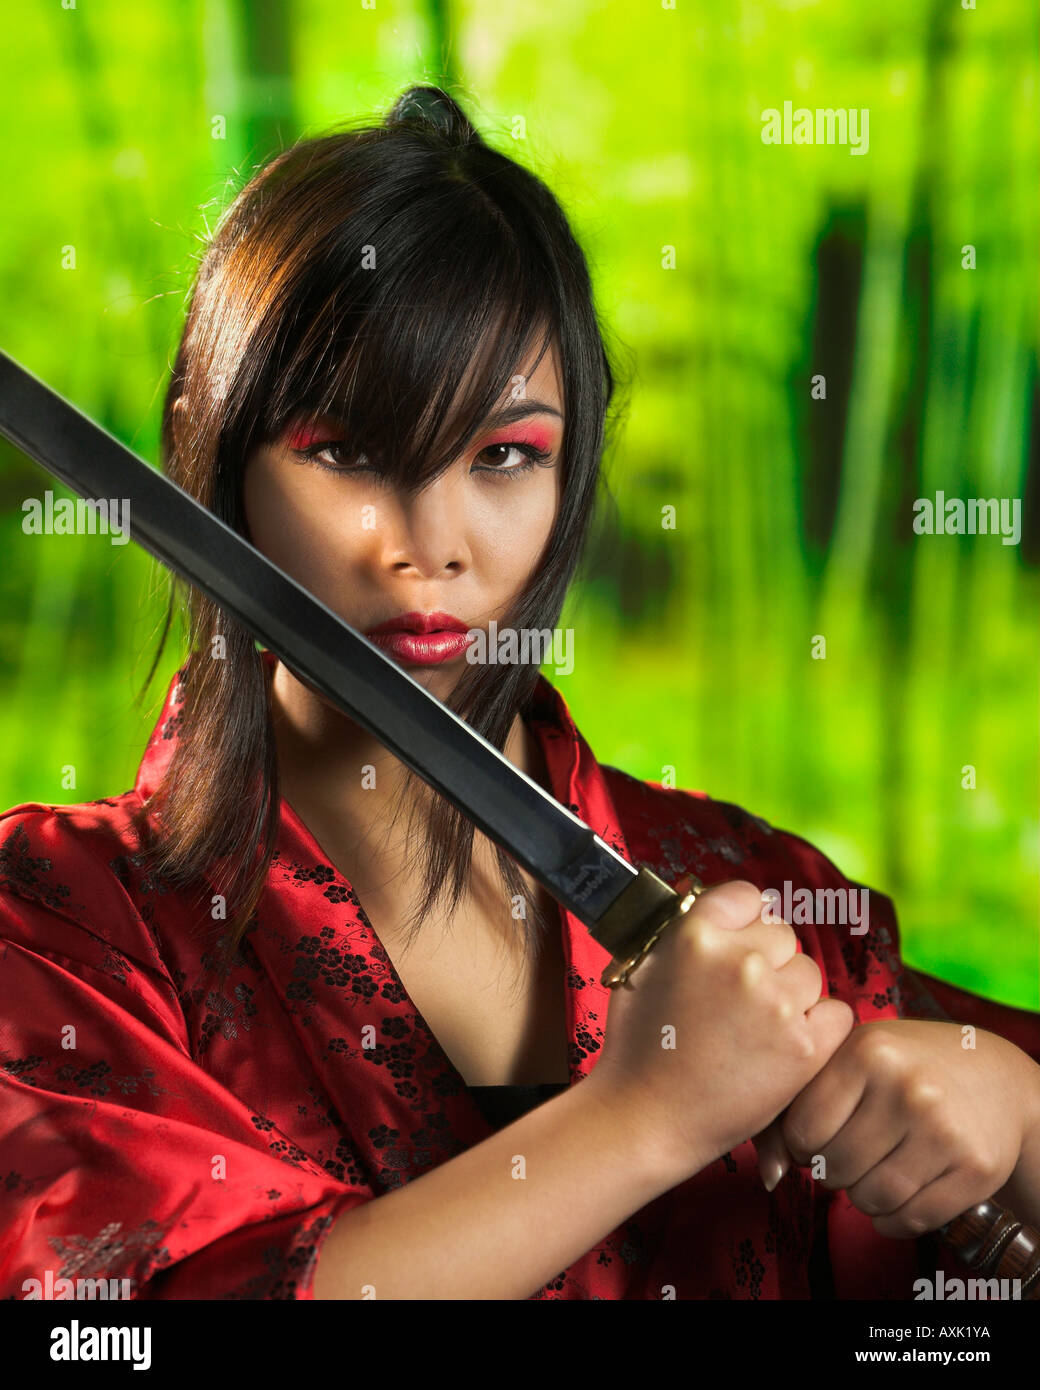 Asian tough fighting warrior girl holding sword diagonally with hair in eyes wearing red green background - Stock Image